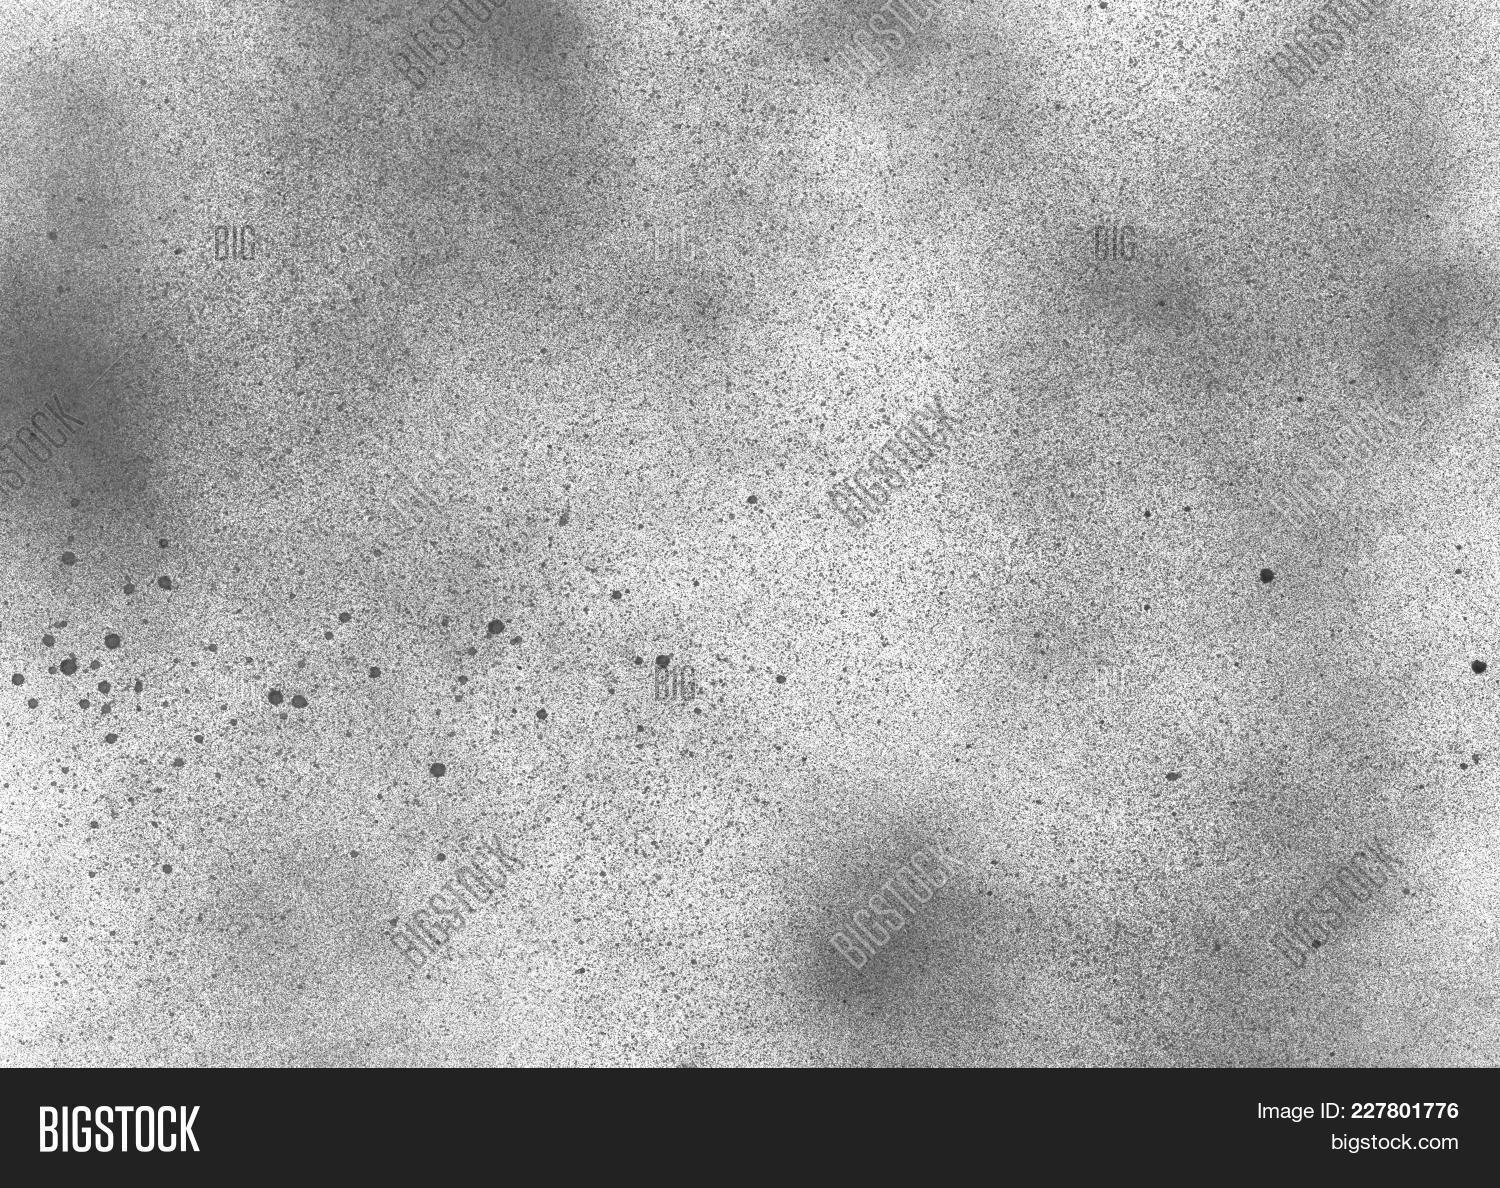 Subtle Grain Texture Abstract Black And White Gritty Grunge Background Dark Paint Spray Particles 227801776 Image Stock Photo